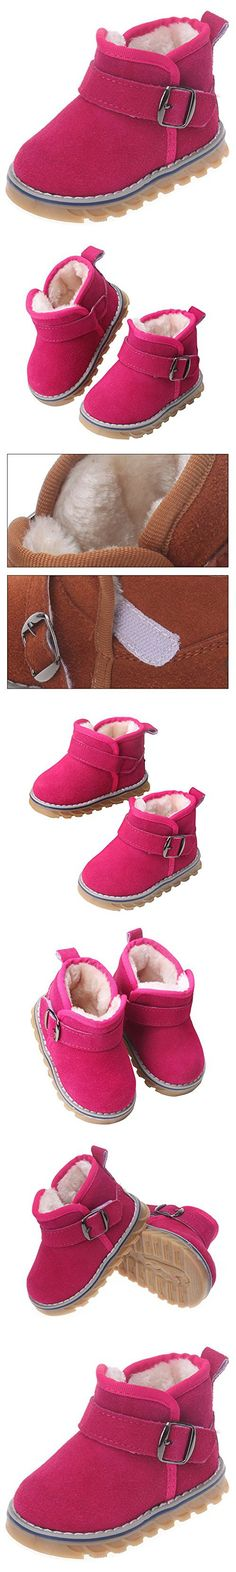 Femizee Newborn Toddler Baby Boy Girl Suede Leather Warm Fur Winter Snow Boot Infant Velcro First Walking Shoes,Hot Pink,3 M US Toddler